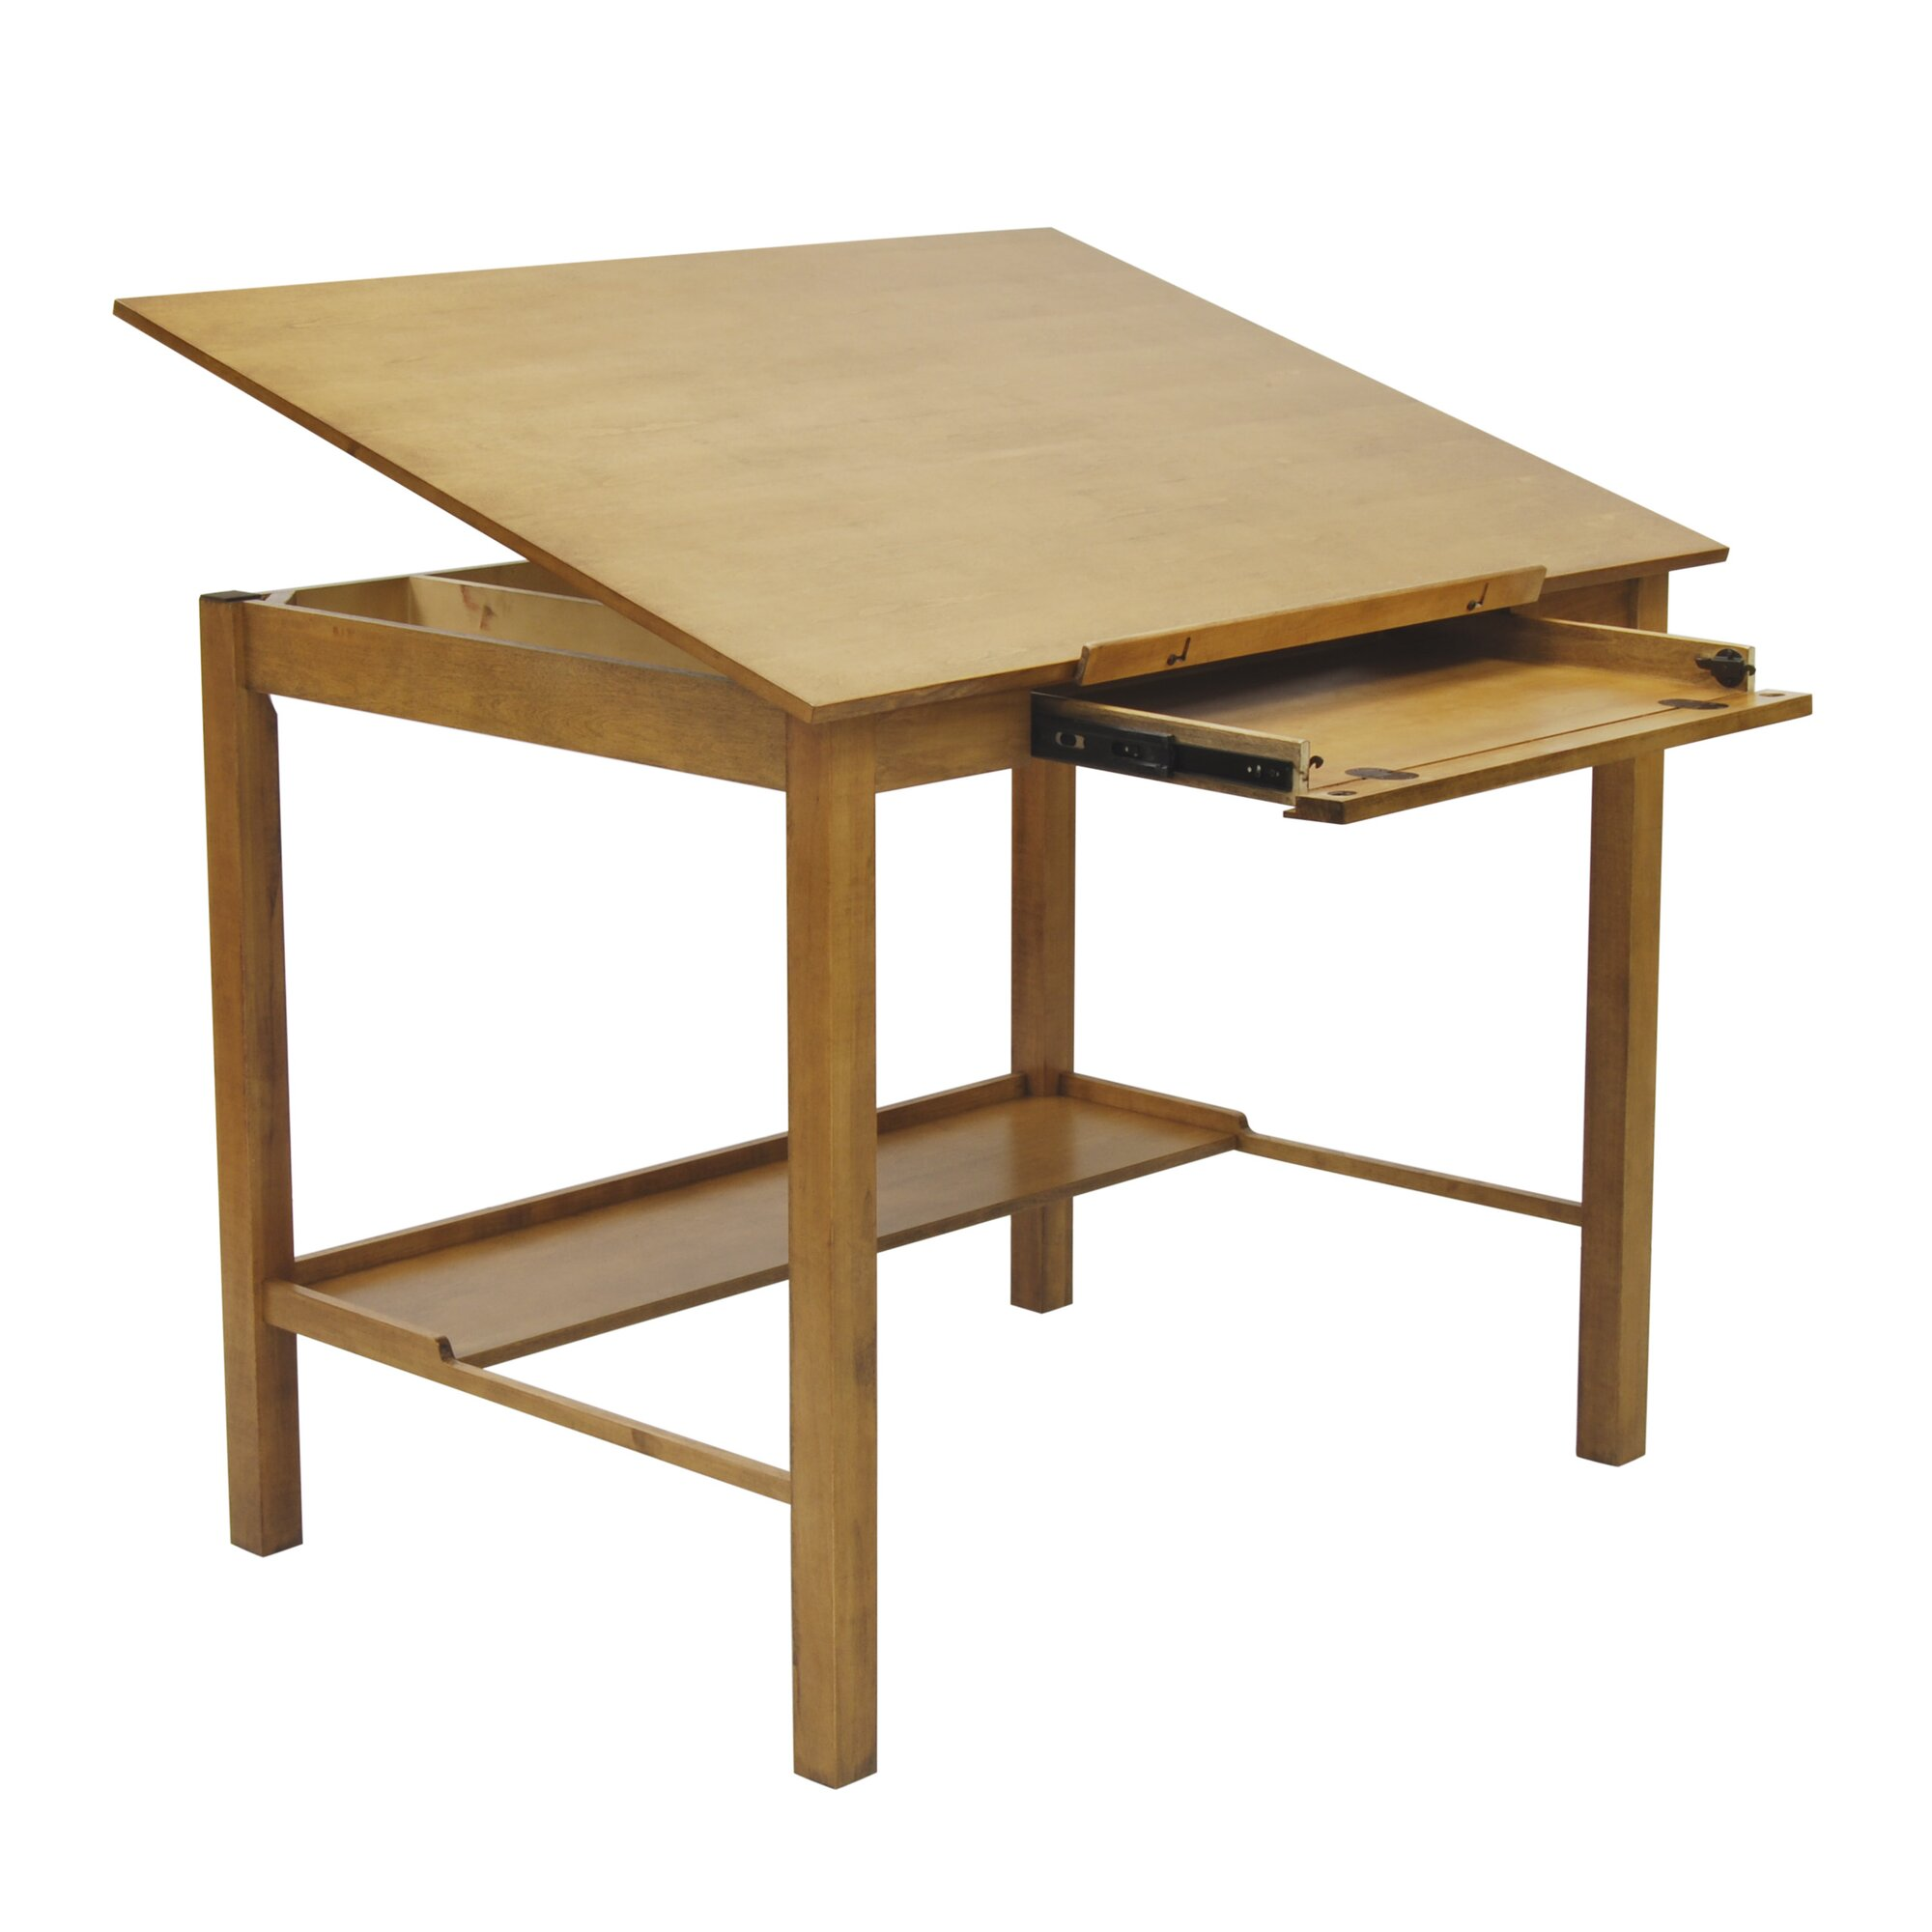 Studio Design Drafting Table studio designs futura drafting table and chair set Americana Drafting Table